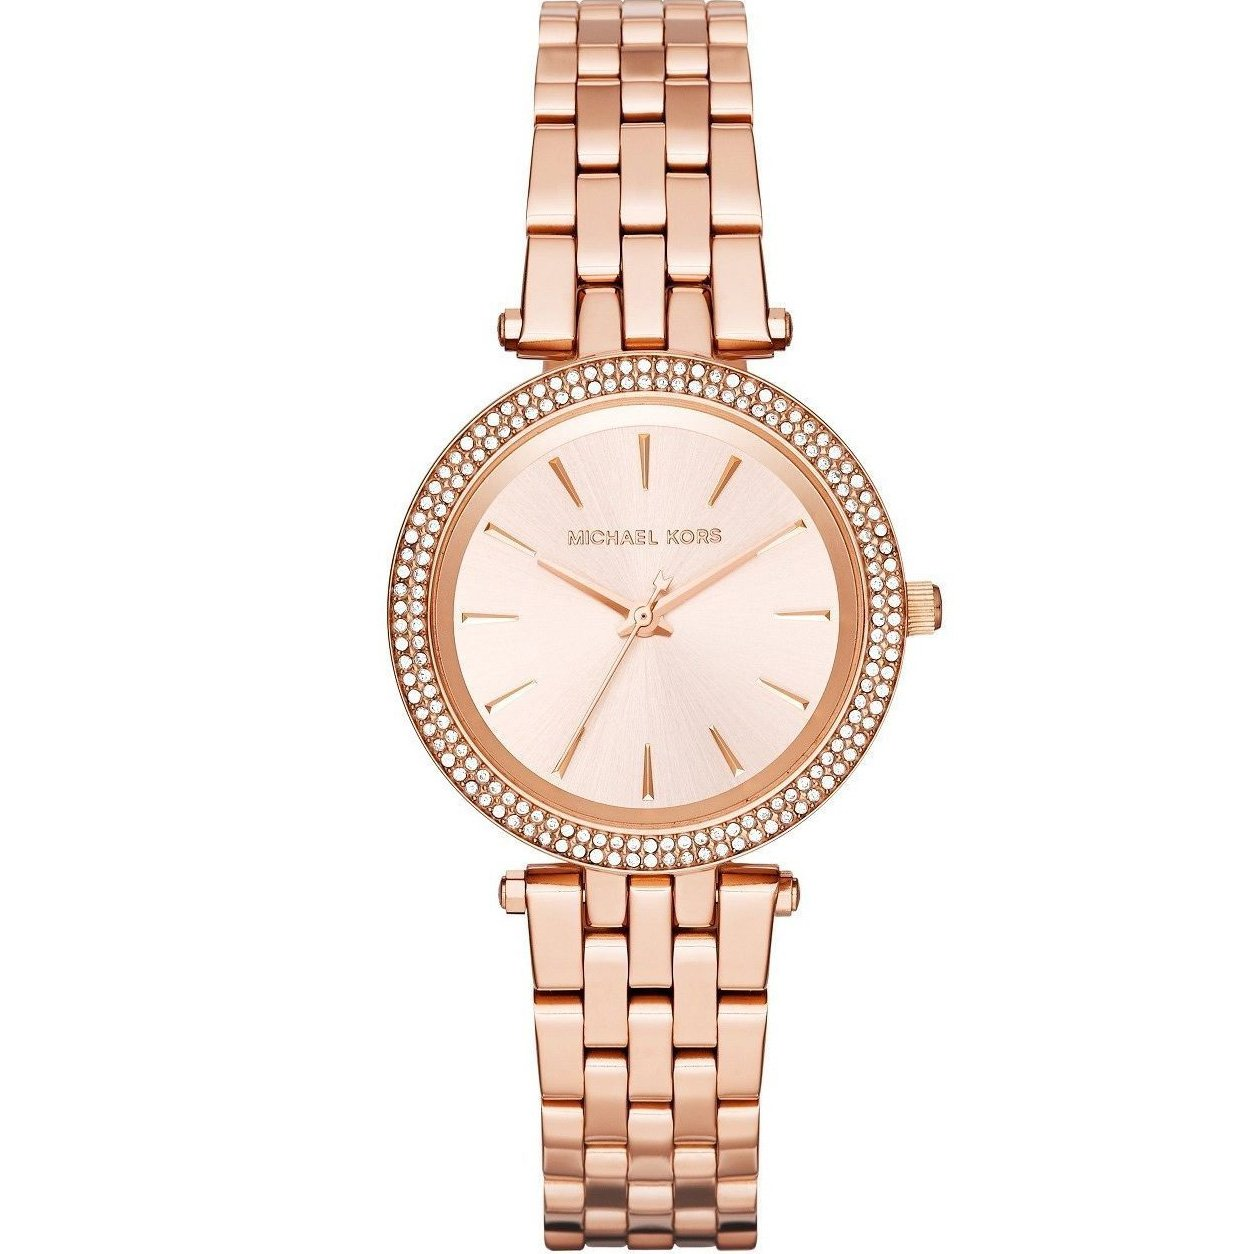 Amazon.com: Michael Kors MK3431 Mini Darci Rose Gold Tone Womens Quartz Watch Gift set: Watches